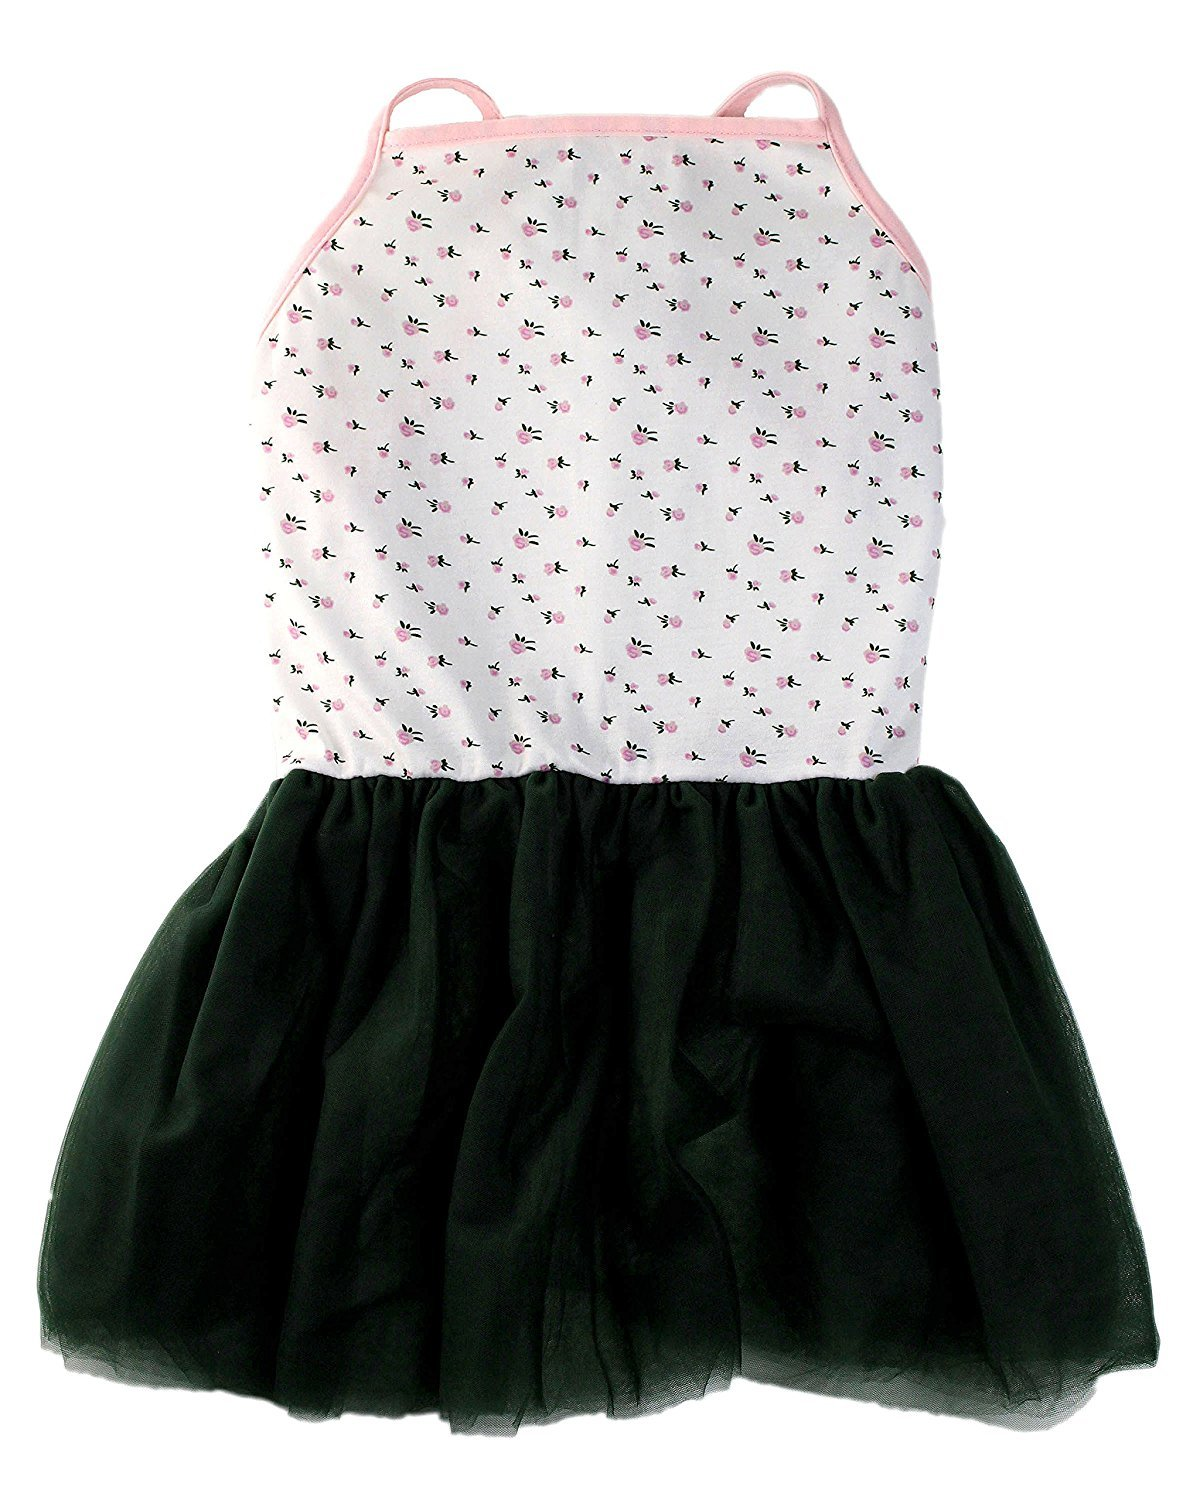 Midlee Pink Rose Tutu Large Dog Dress (XX-Large) by Midlee